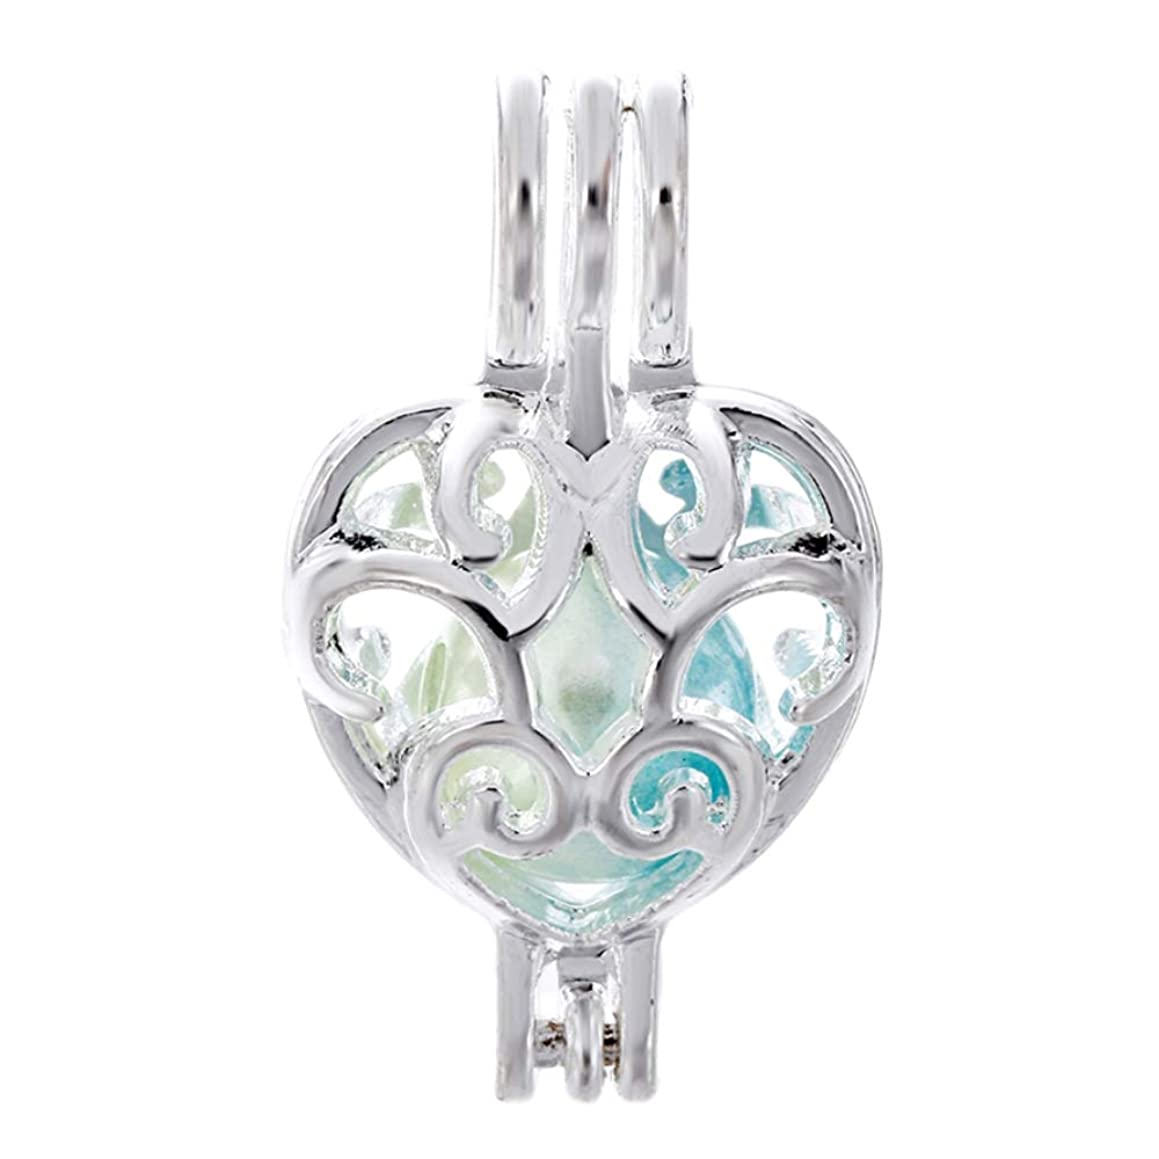 10pcs Heart Pearl Cage Bright Silver Beads Cage Locket Pendant Jewelry Making-for Oyster Pearls, Essential Oil Diffuser, Fun Gifts (Heart-1)